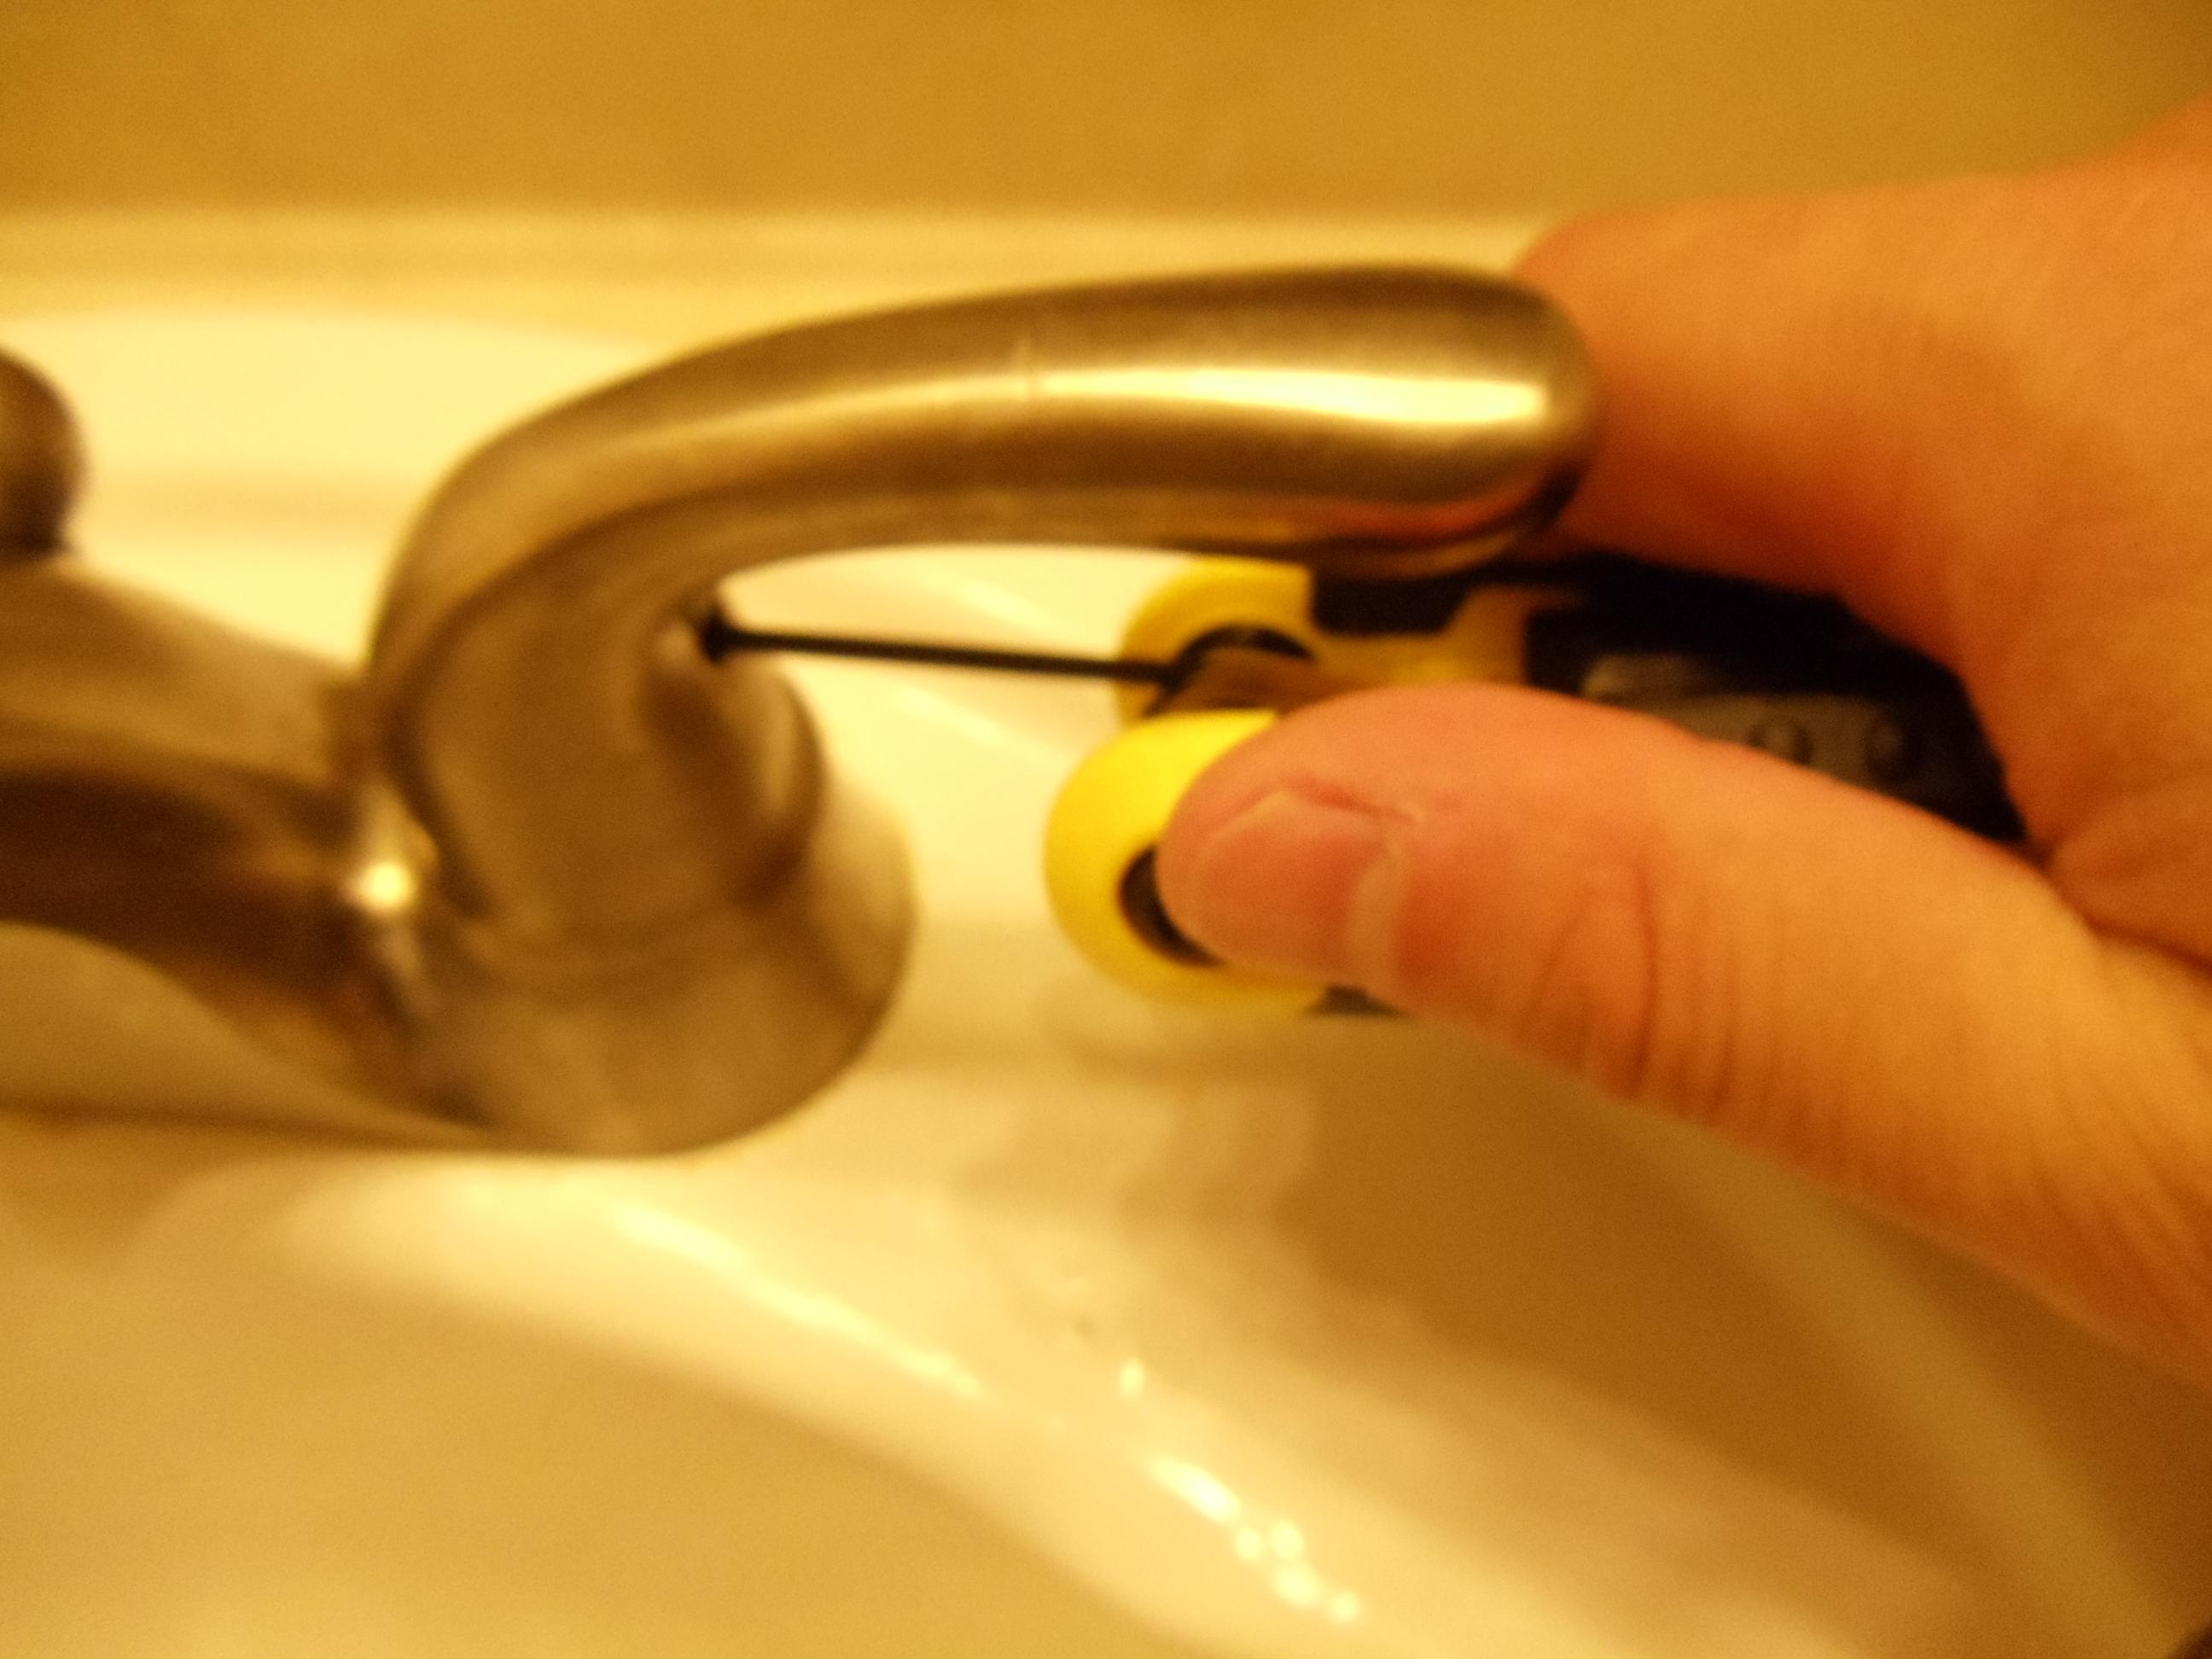 How To Fix A Leaking Glacier Bay Bathroom Sink Faucet